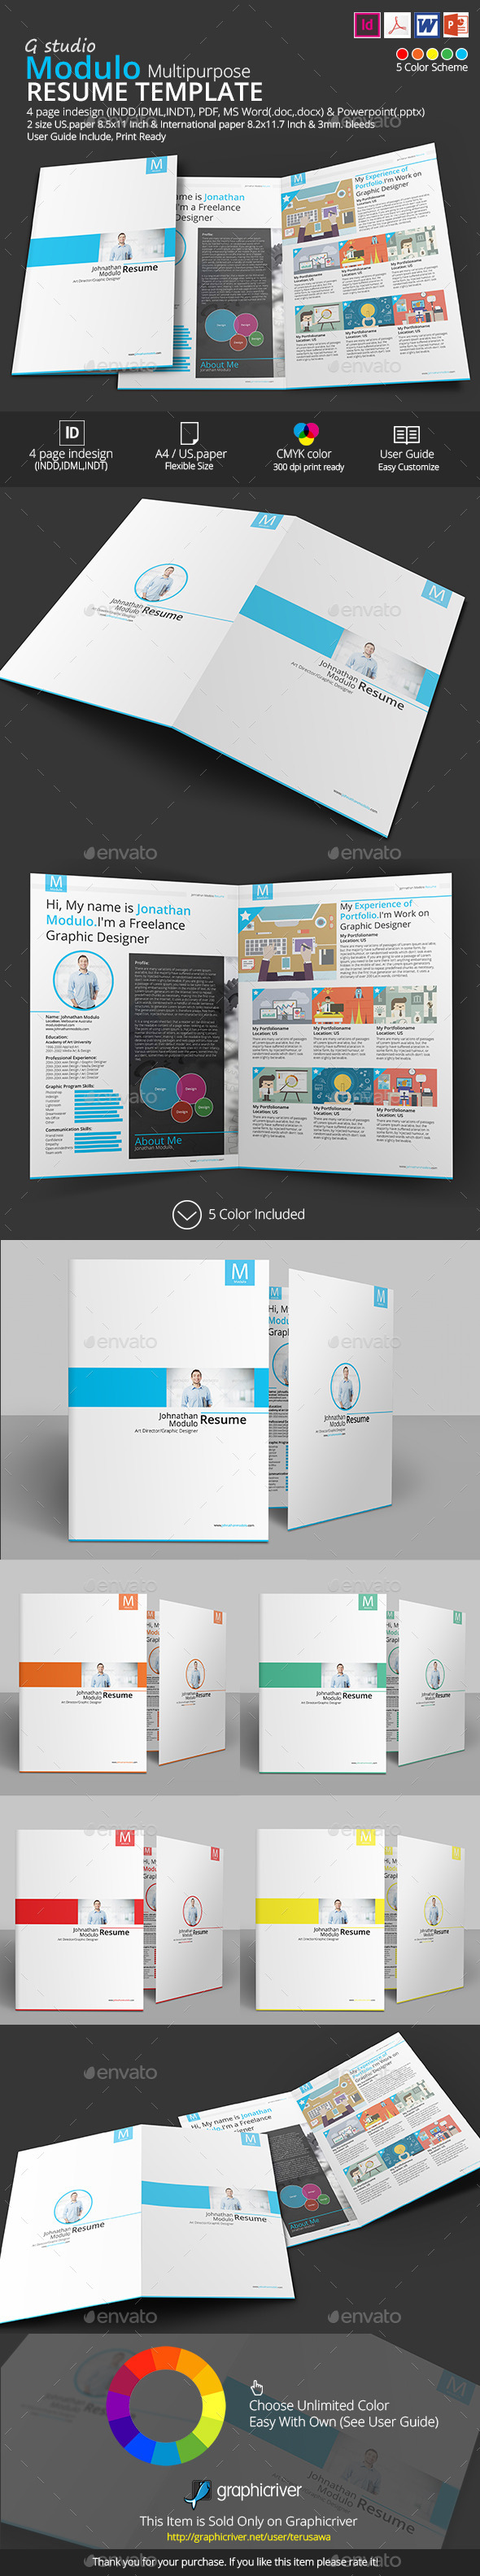 Modulo Resume Template - Resumes Stationery